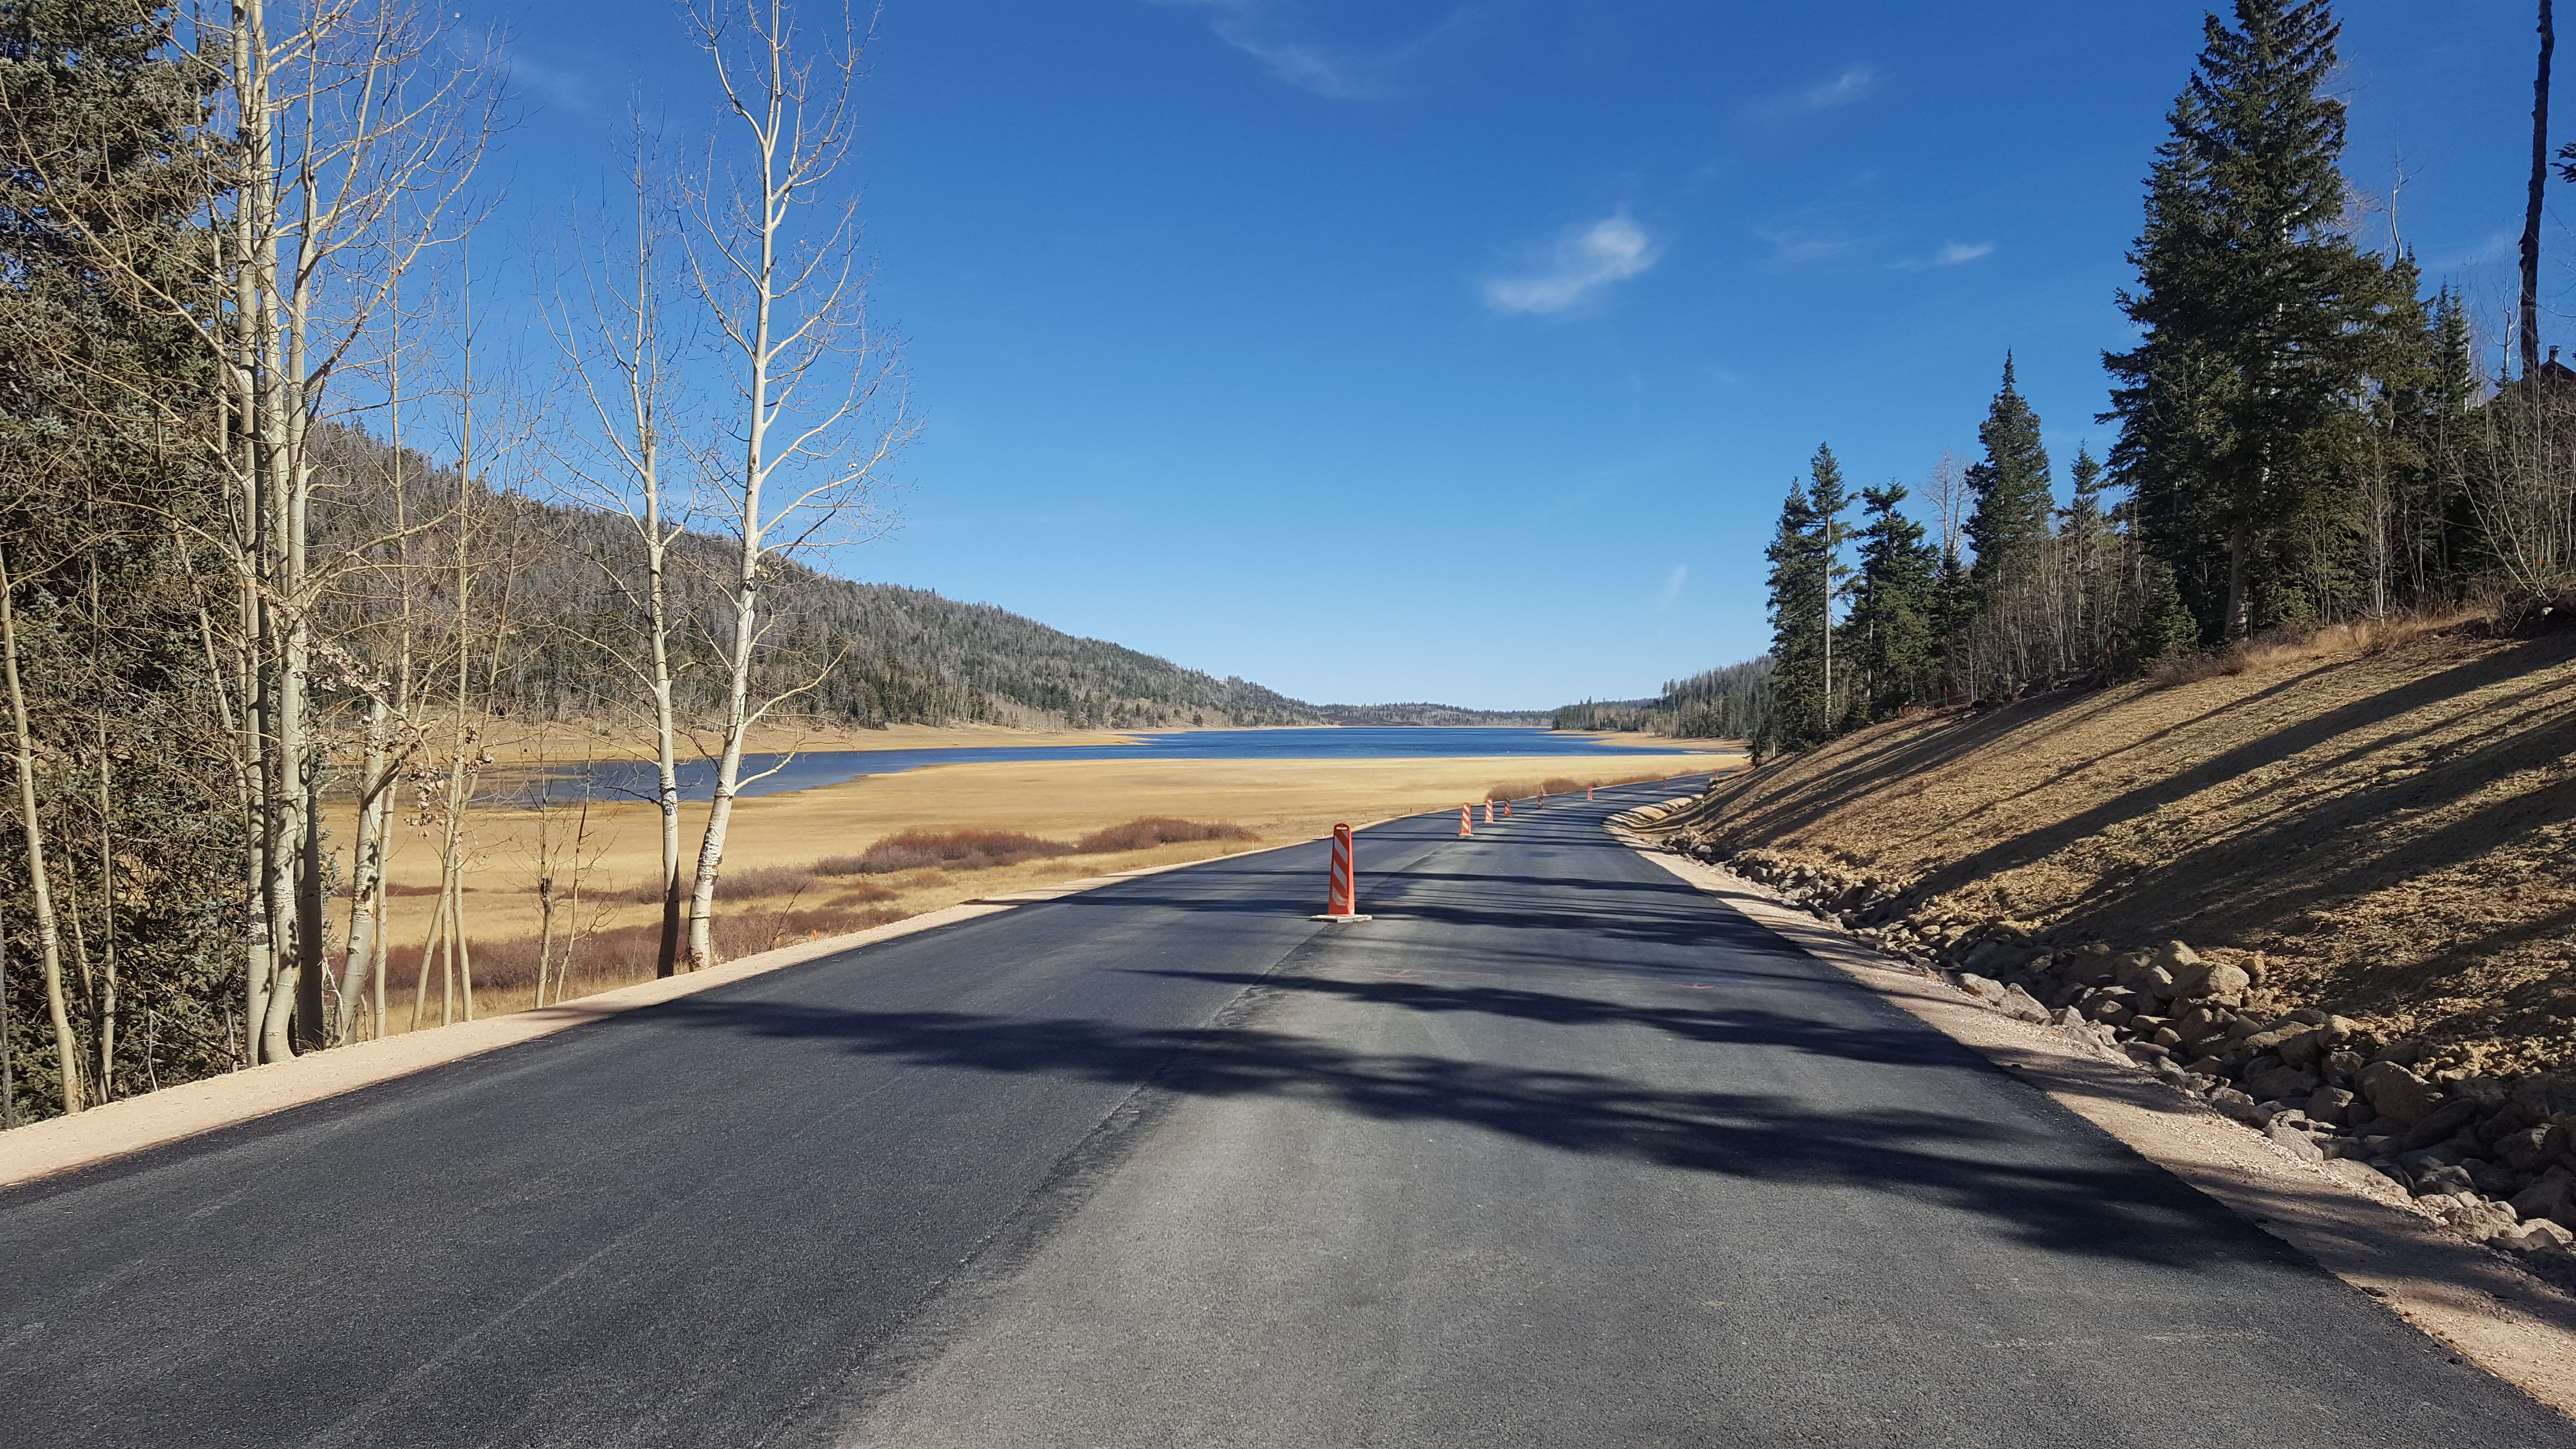 Navajo Lake Road during construction and repaving project, summer and fall 2016. The road will close Dec. 7 for the winter season until spring 2017 or following when the work will be completed. Dixie National Forest, Utah, date not specified | Photo courtesy of Dixie National Forest, St. George News / Cedar City News